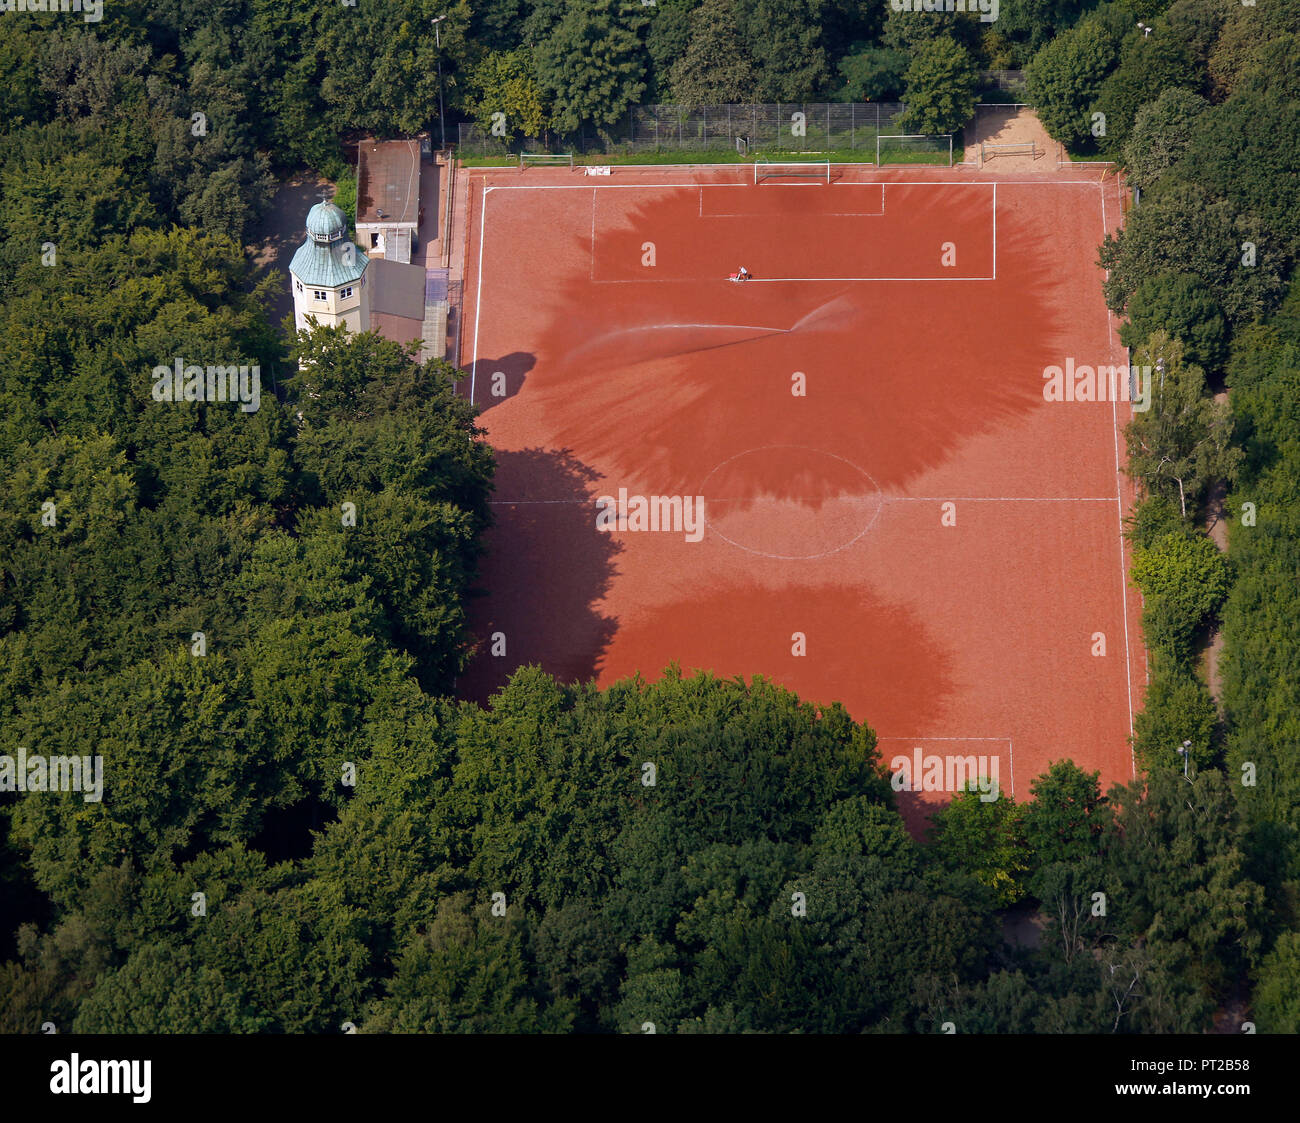 Aerial view, Volkspark with sports ground, line painter, Herne, Ruhr area, North Rhine-Westphalia, Germany, Europe, - Stock Image